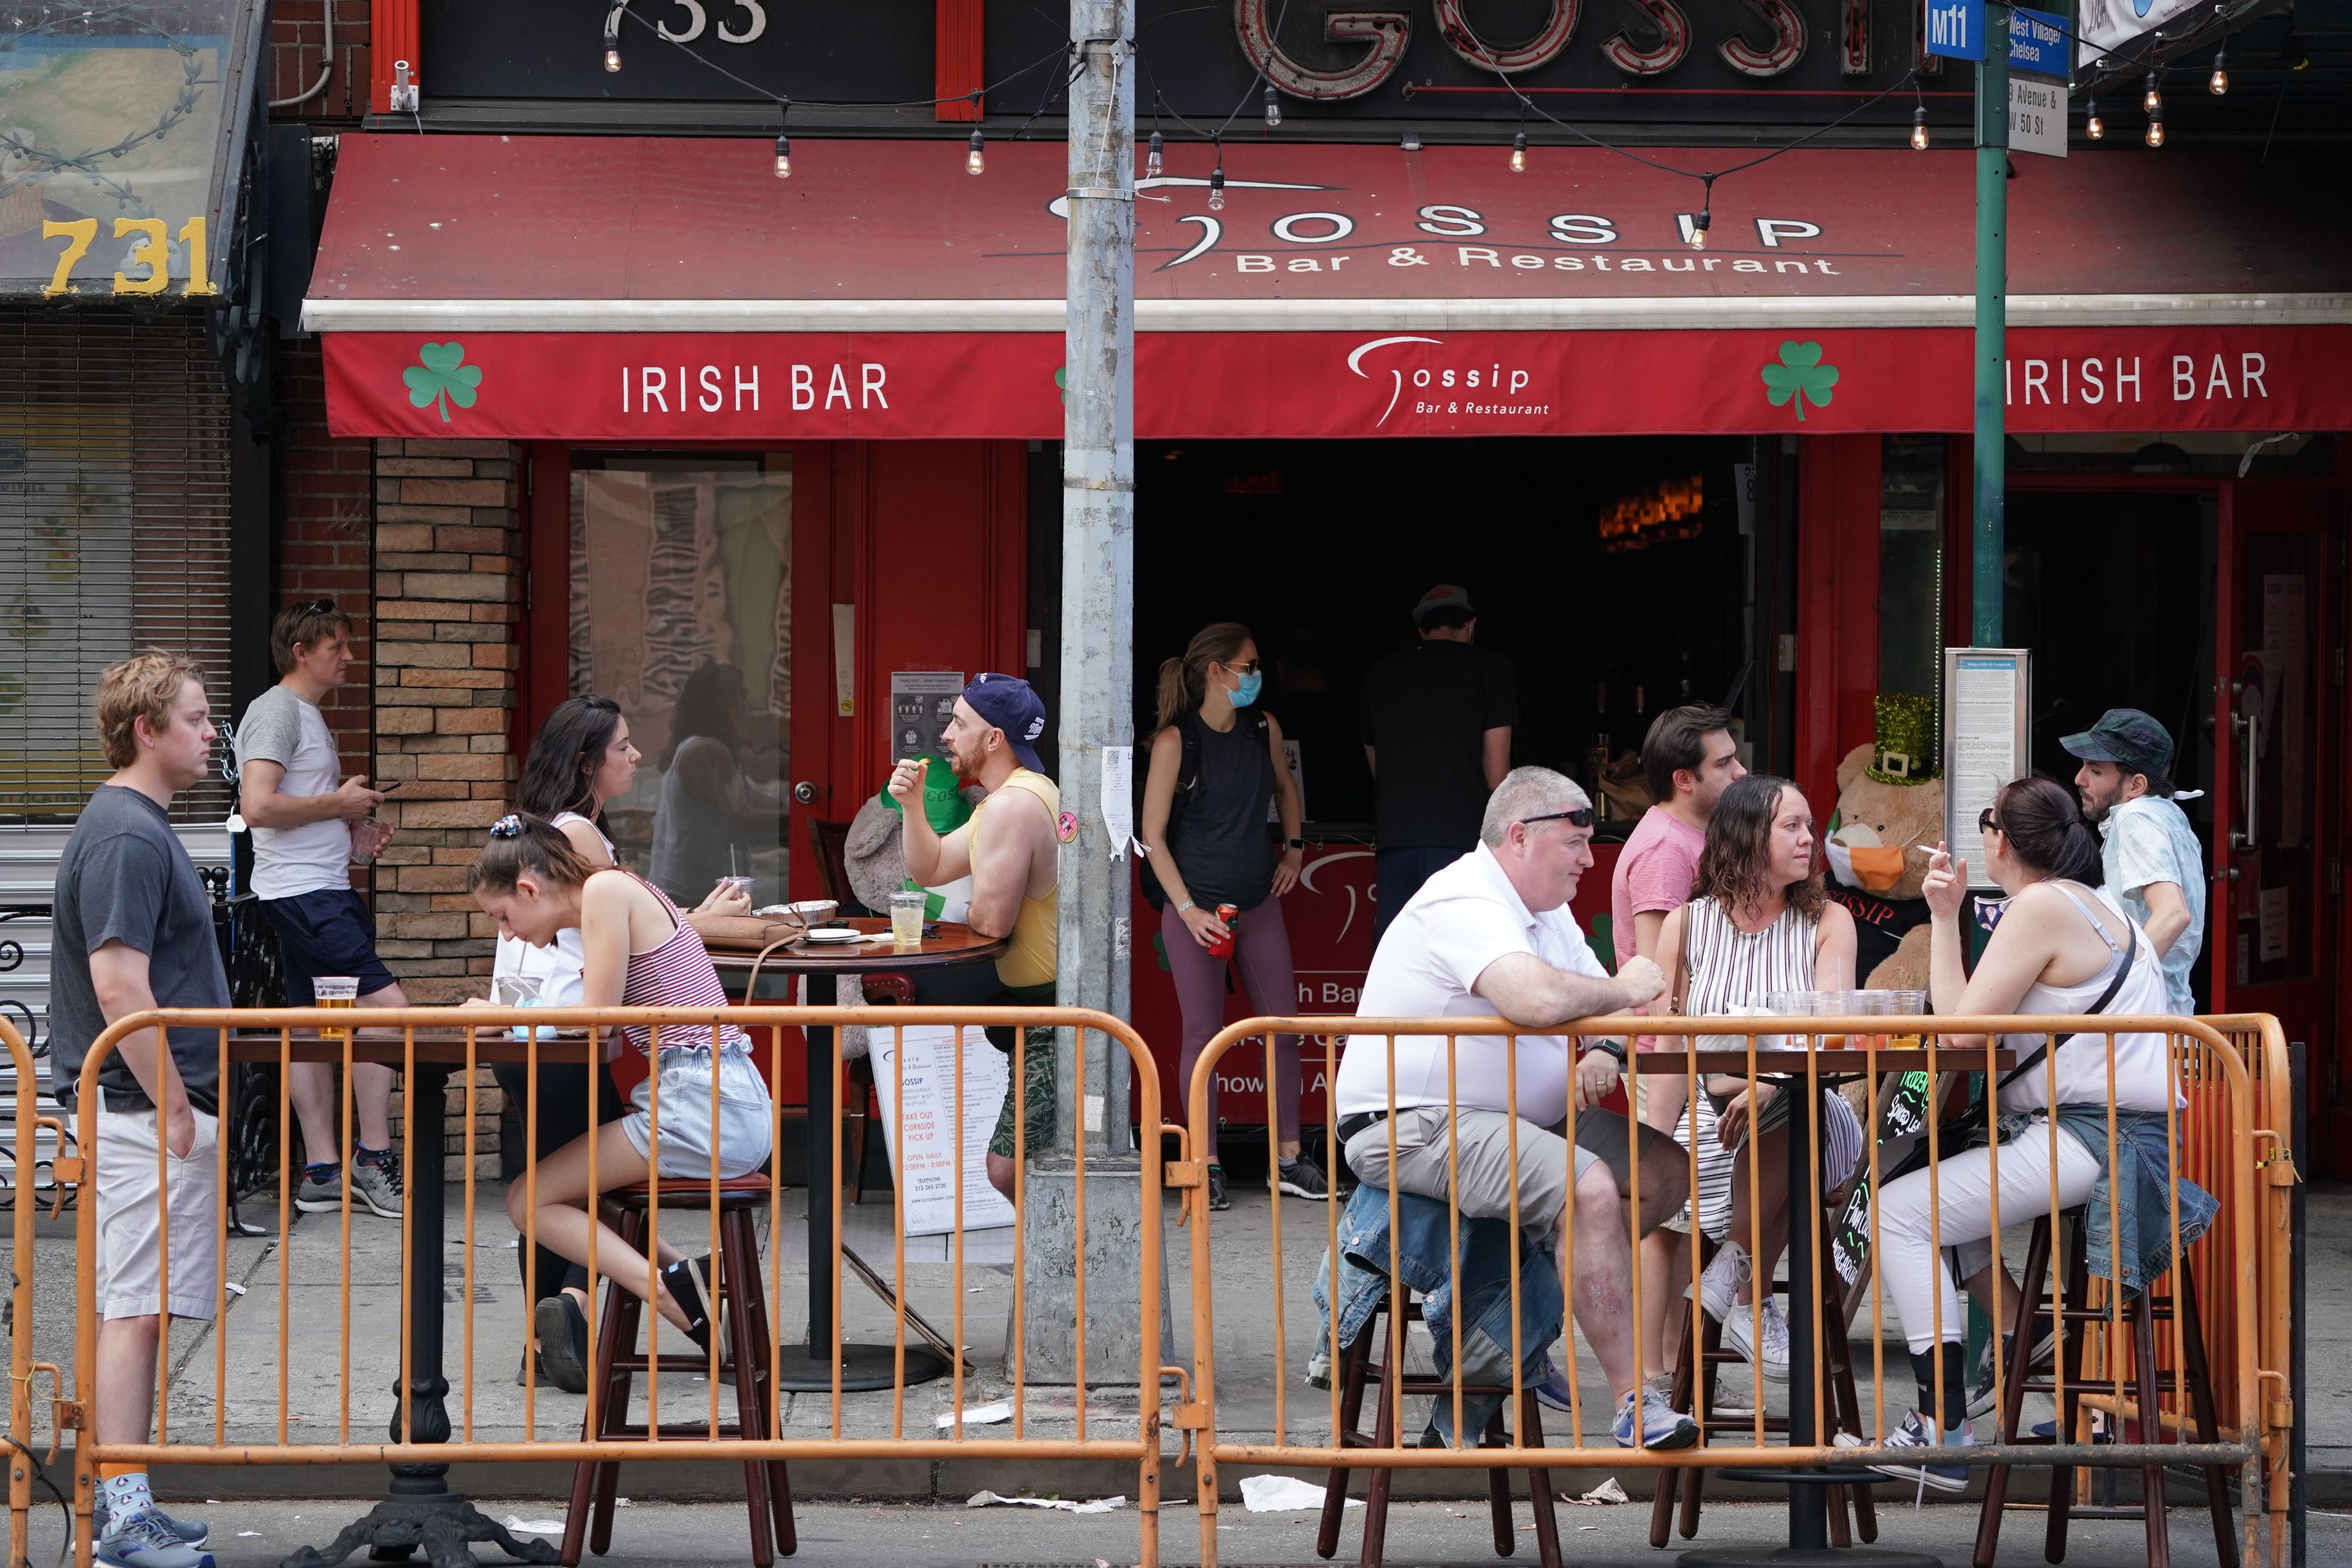 People drink outdoors at bars and restaurants in the Hells Kitchen neighborhood of New York on June 7, 2020. (Photo by BRYAN R. SMITH/AFP via Getty Images)